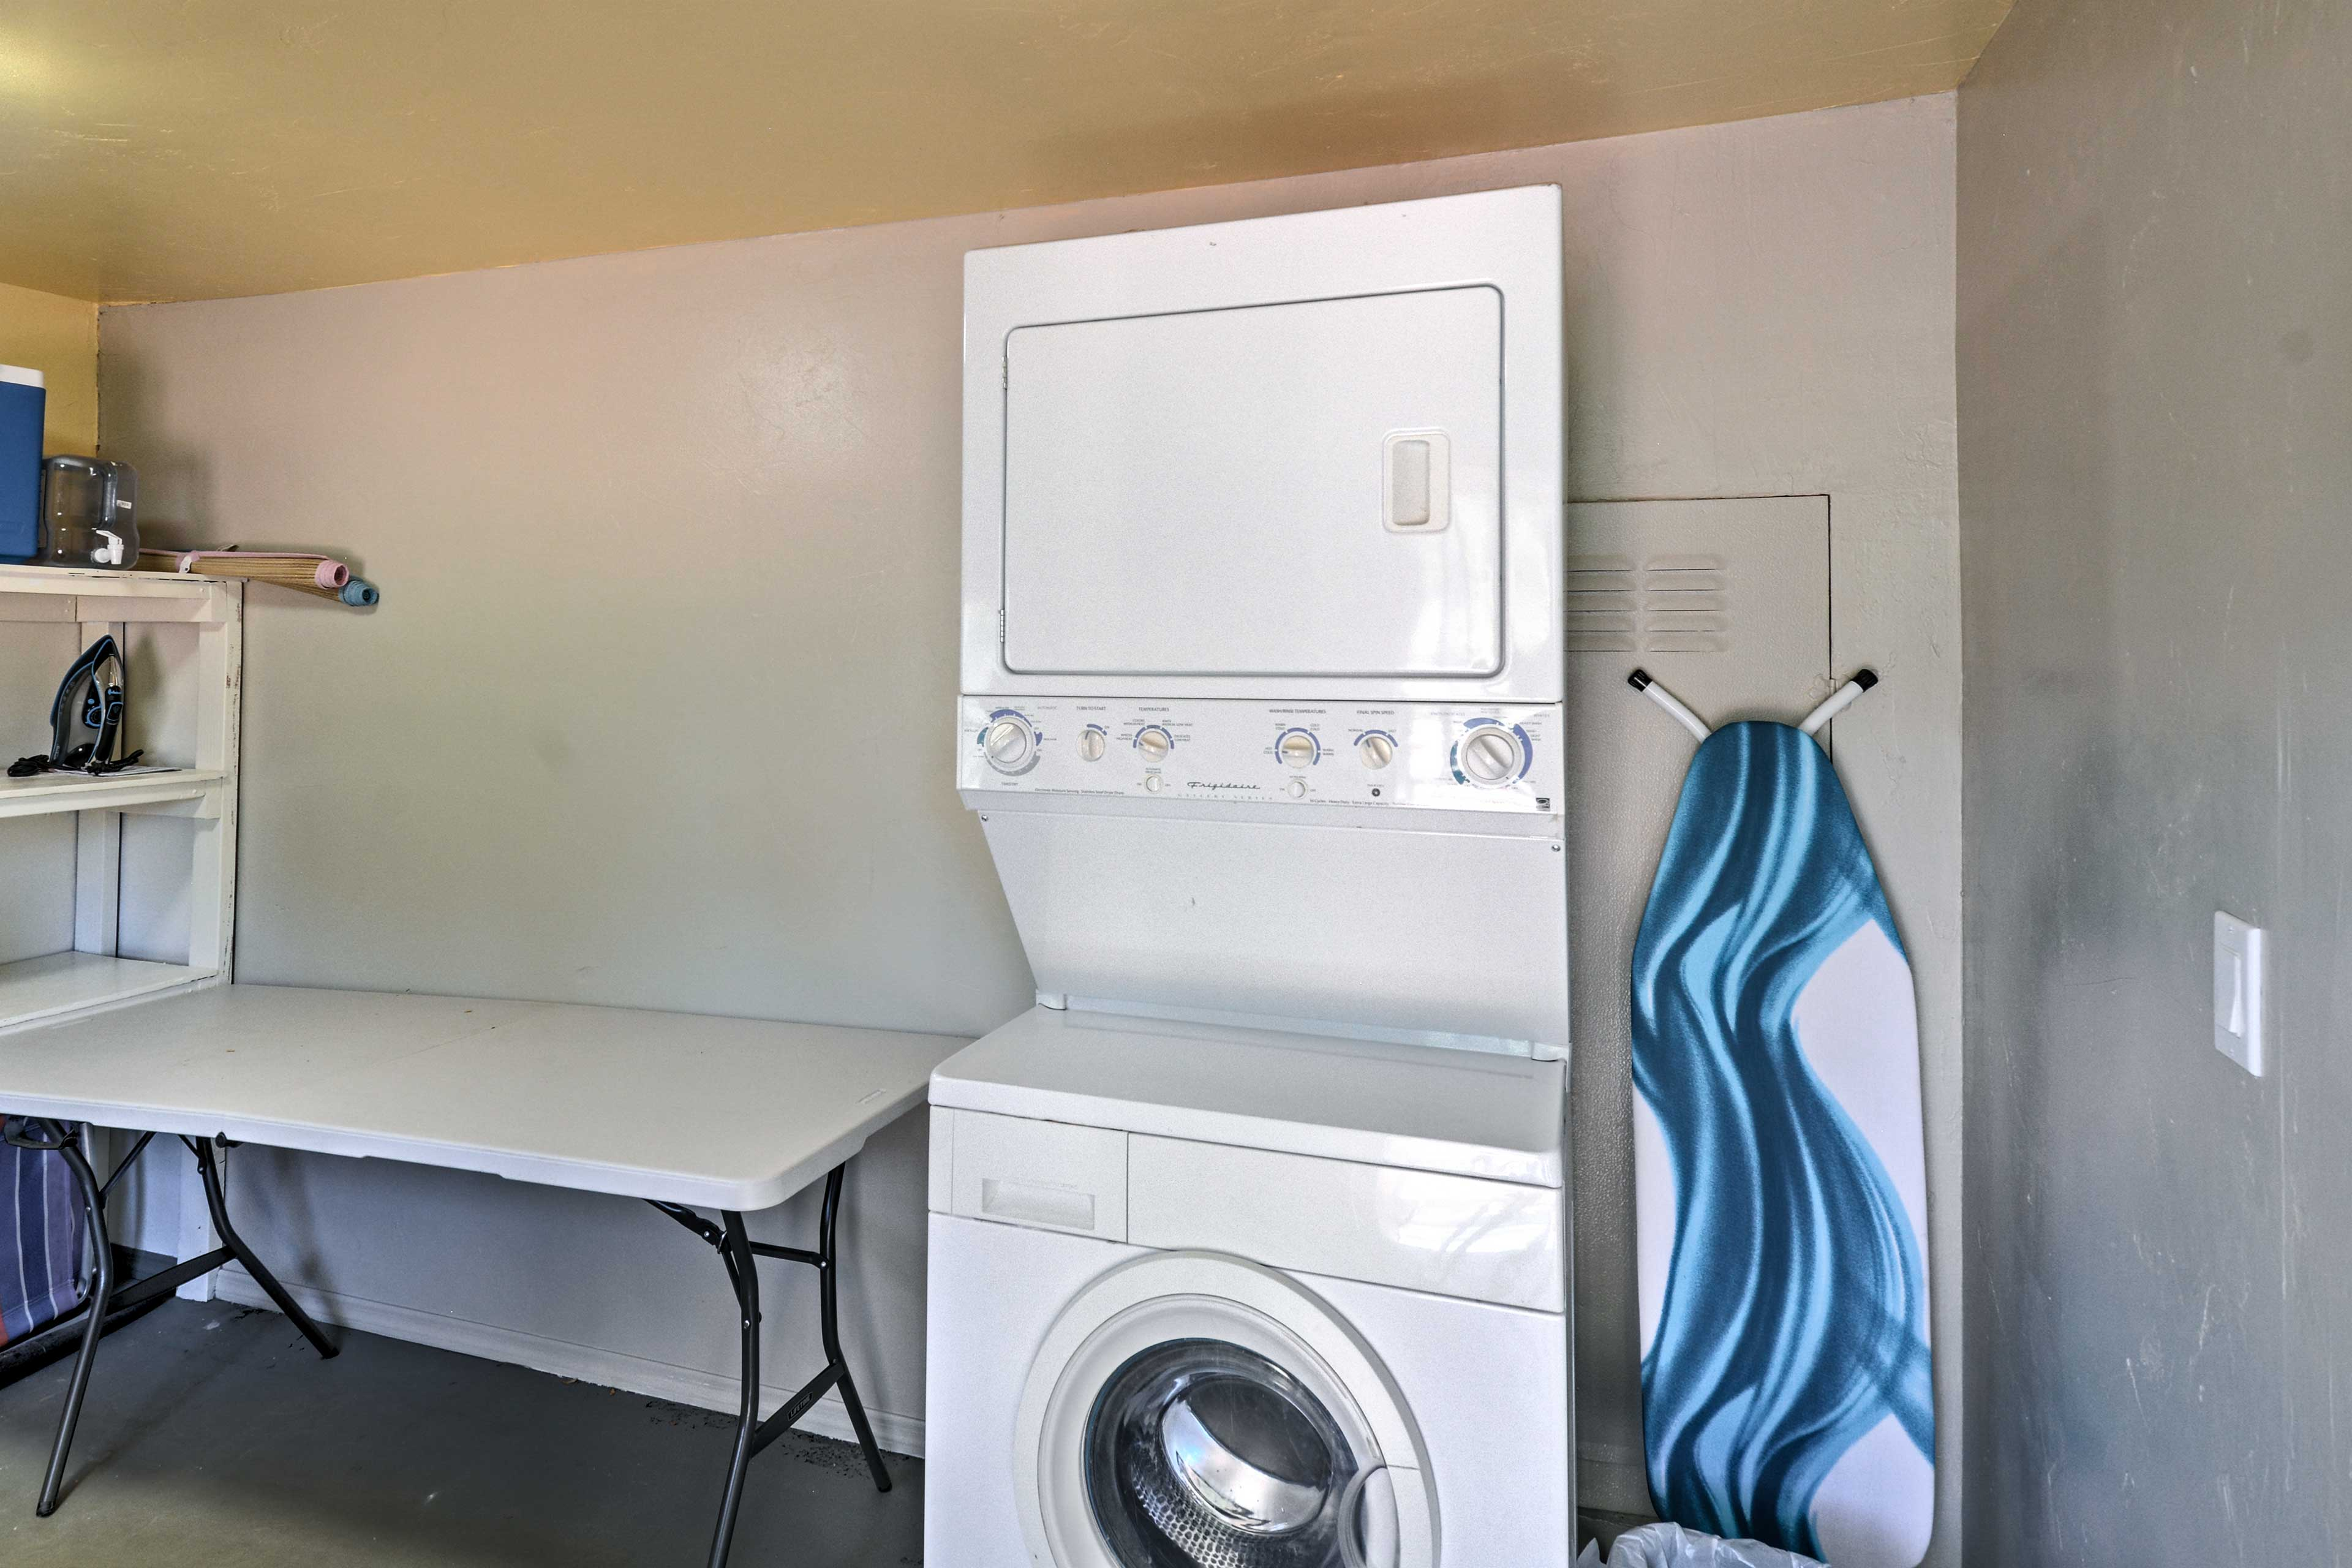 Keep your belongings fresh and clean during your stay.